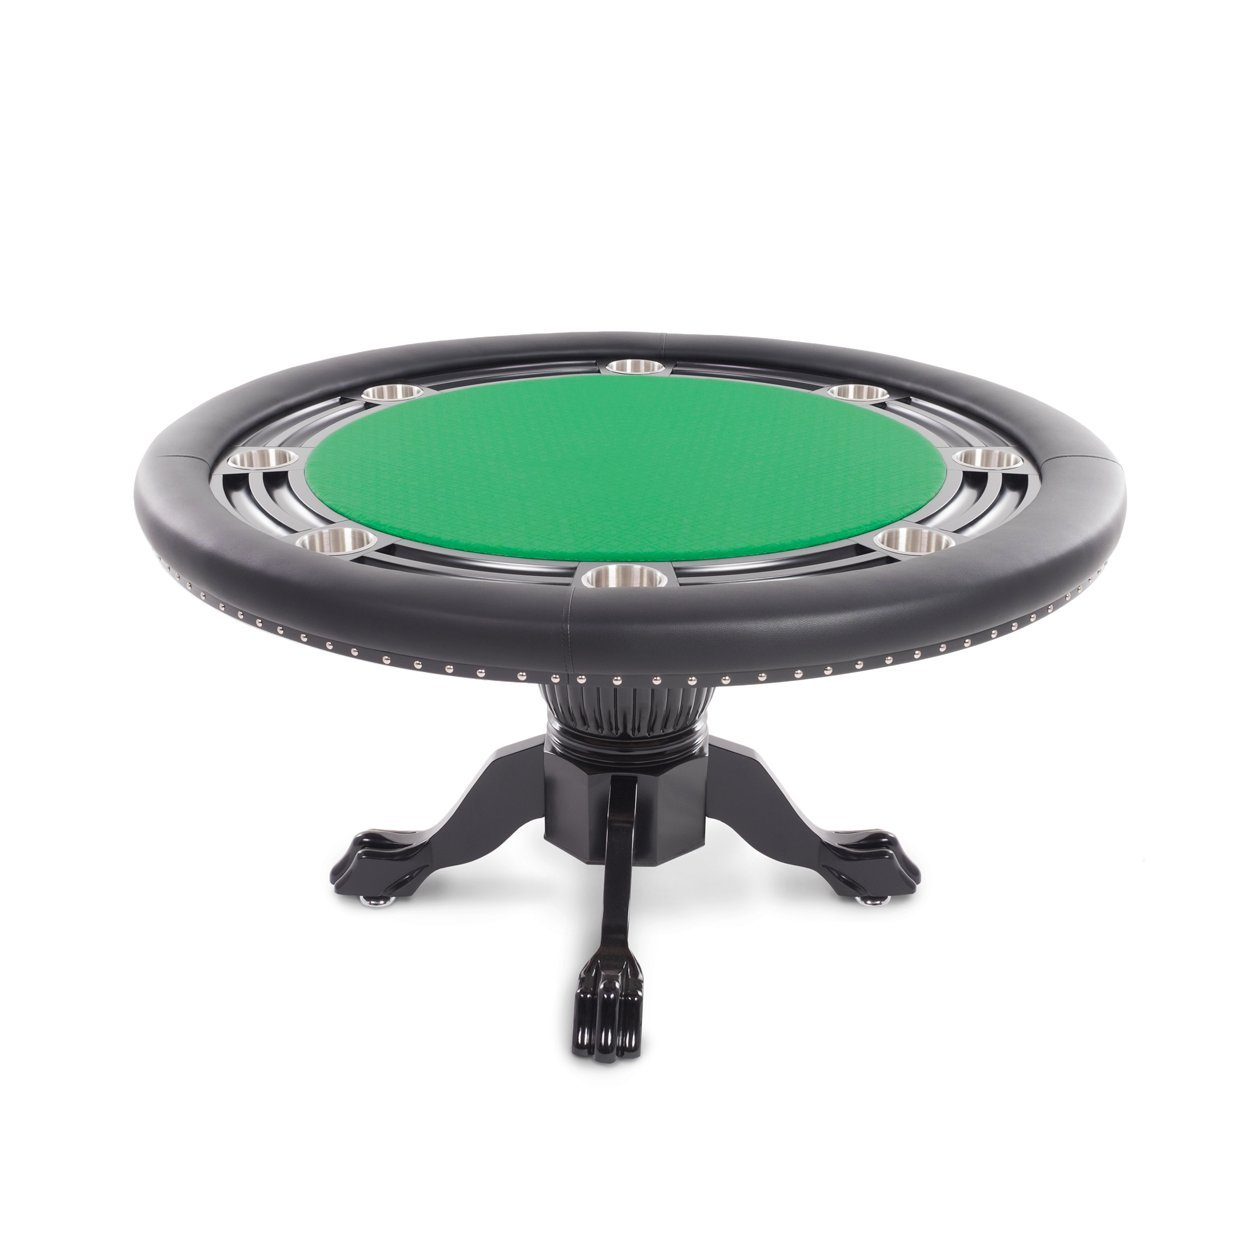 BBO Poker Nighthawk Poker Table for 8 Players with Green Speed Cloth Playing Surface, 55-Inch Round